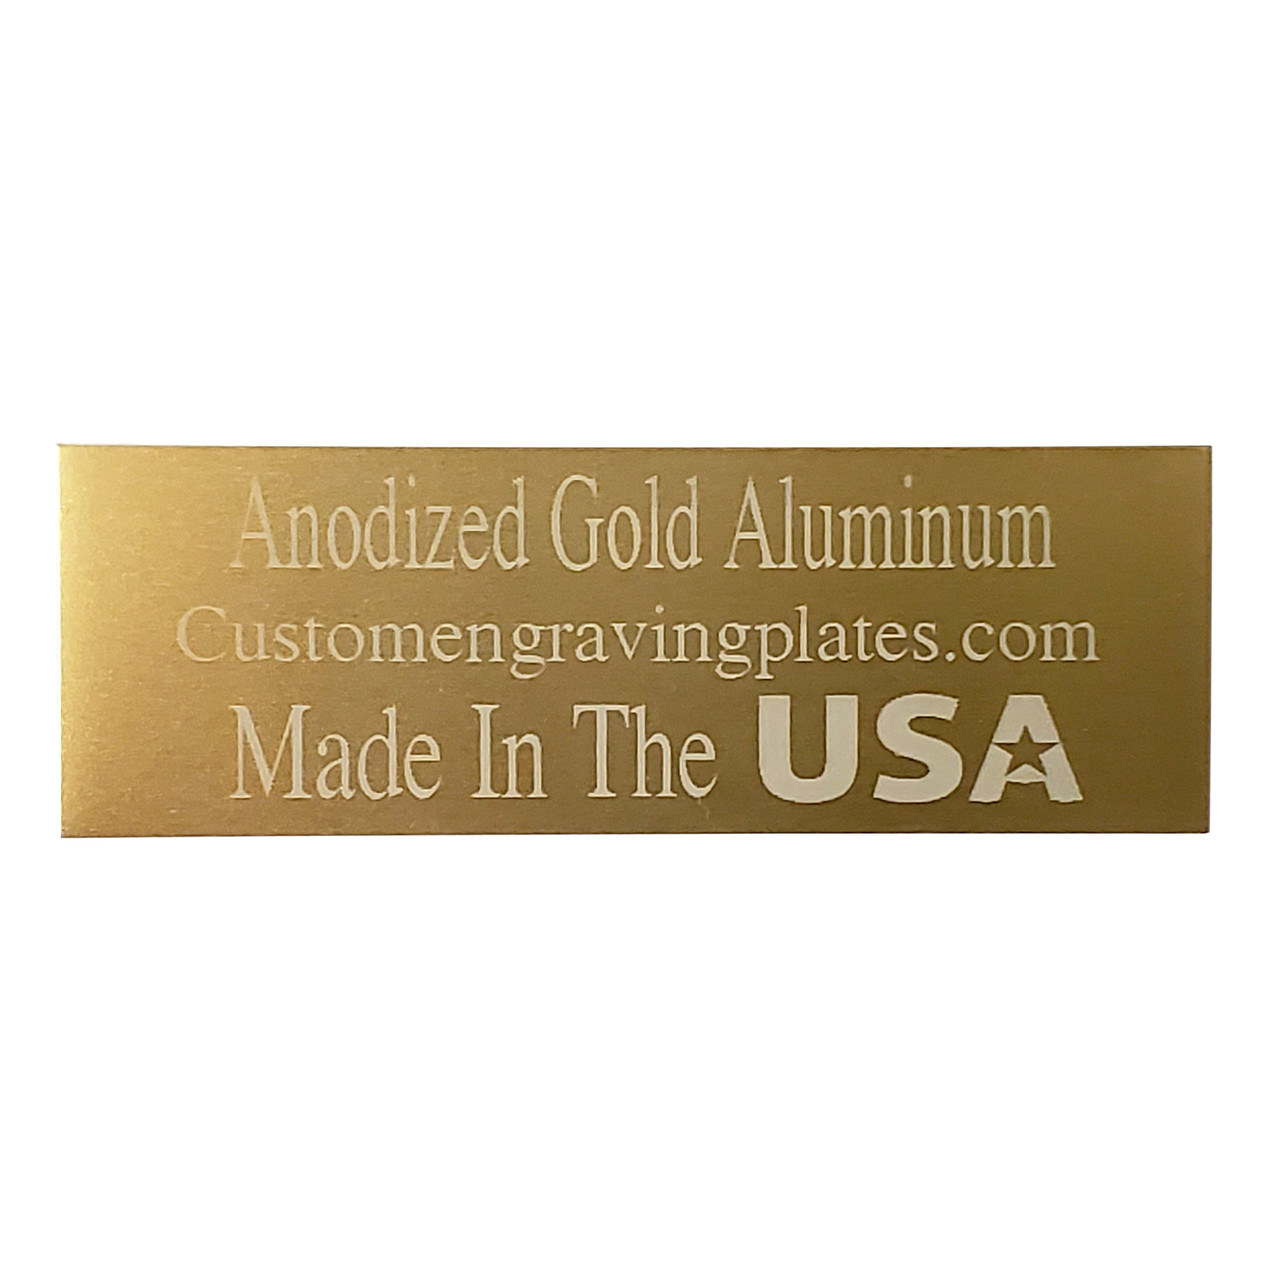 """lot of 20 GOLD ALUM ENGRAVING PLATES 1/"""" x 4/"""" with protective film"""